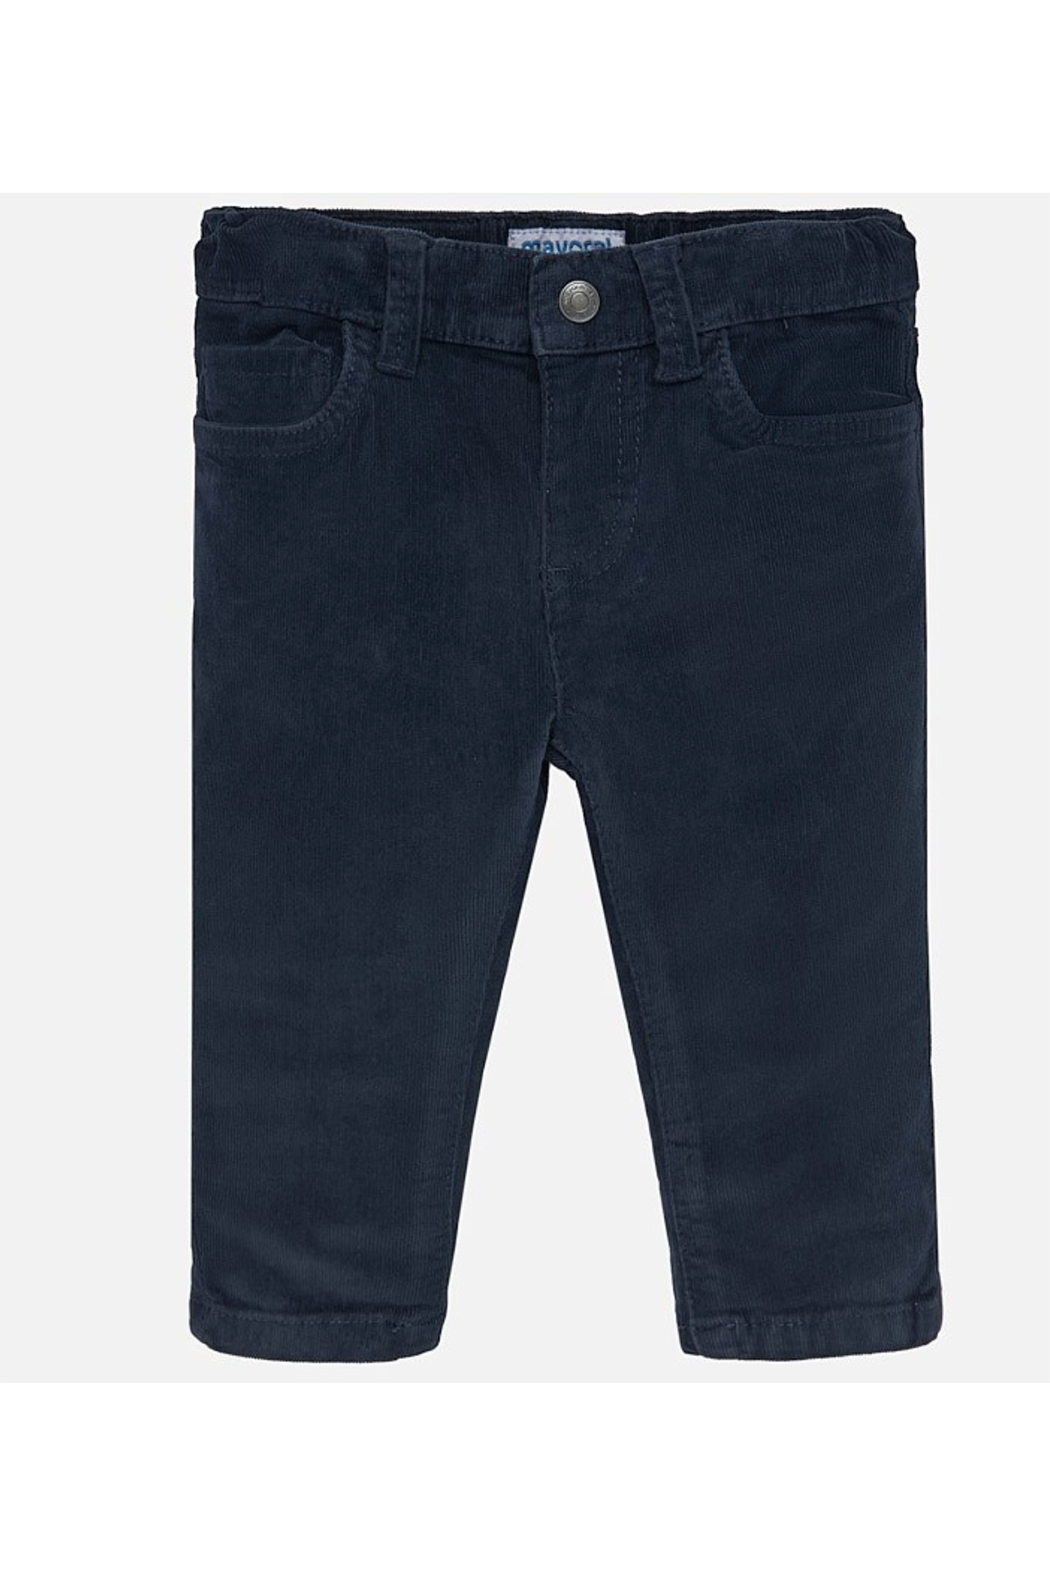 Mayoral Basic Slim Fit Cord Trousers - Main Image